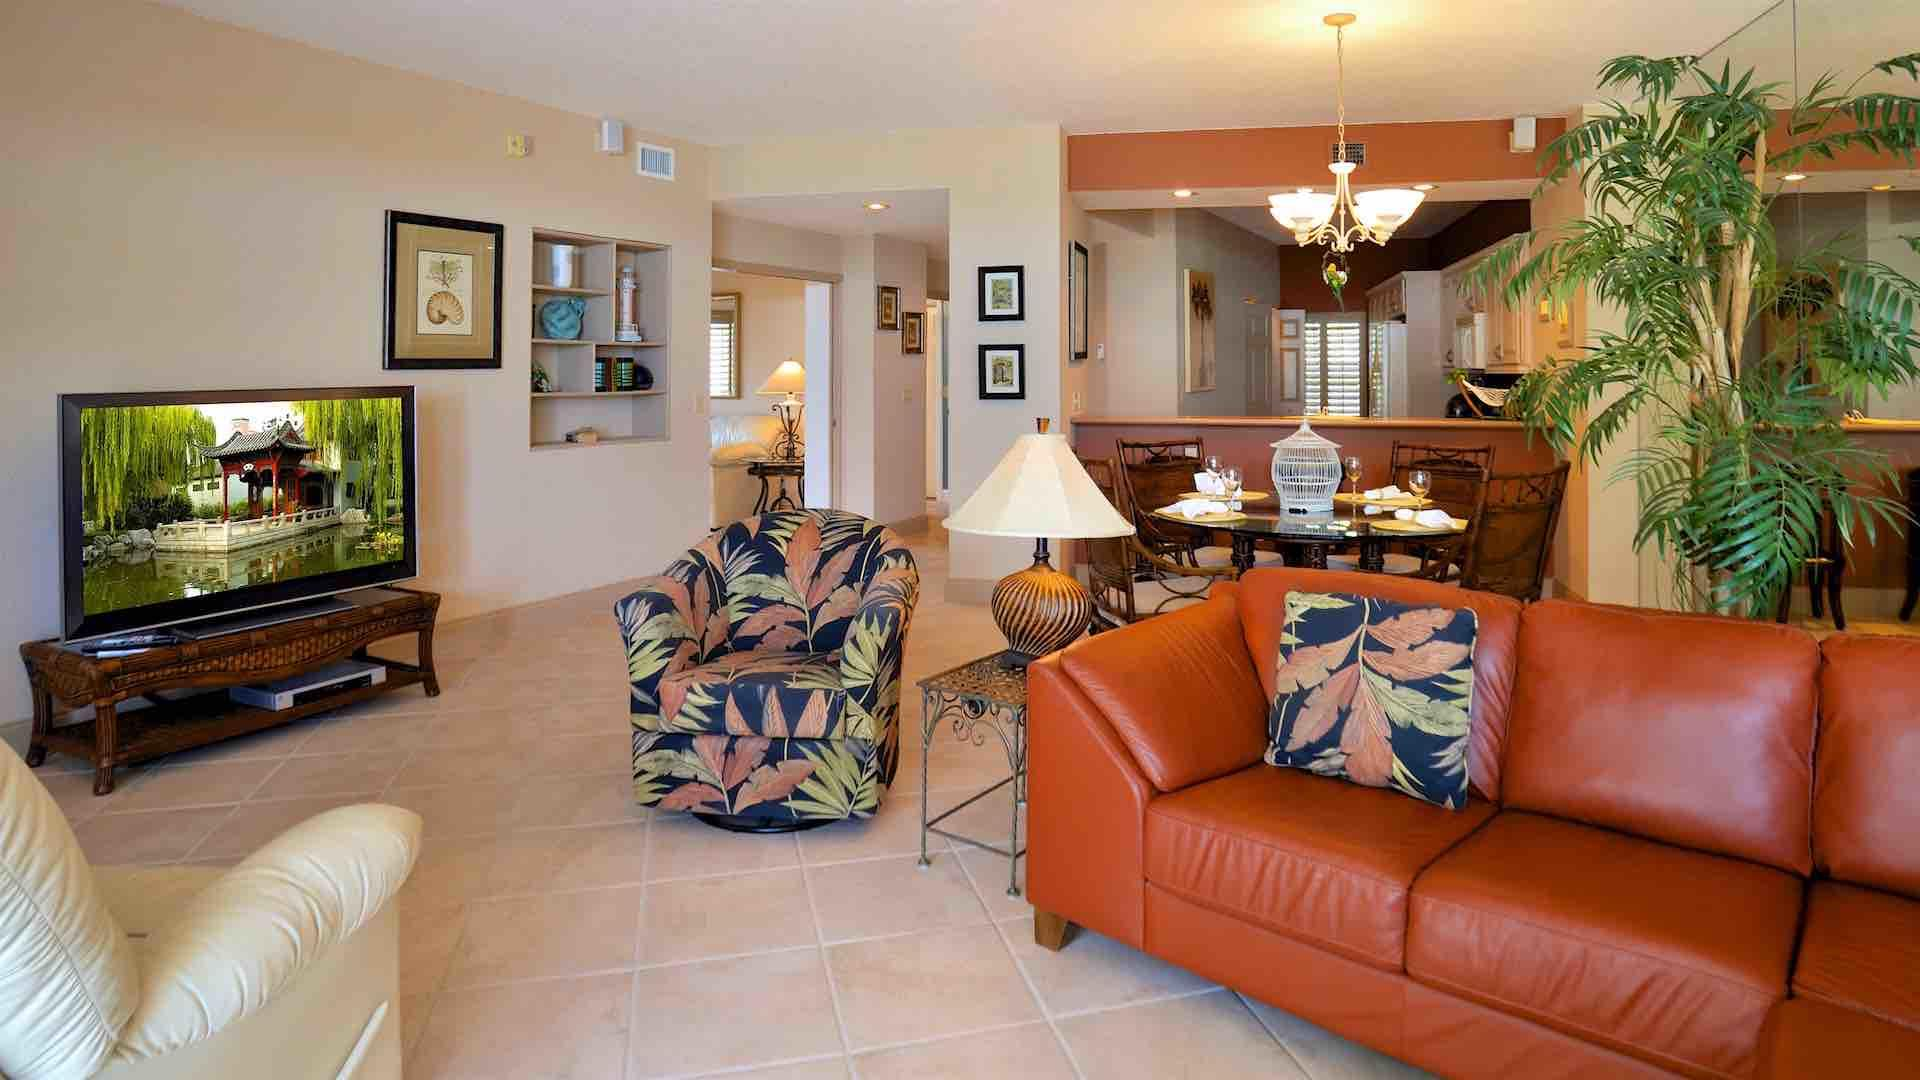 Enjoy watching the large flat screen TV from the various seating options...